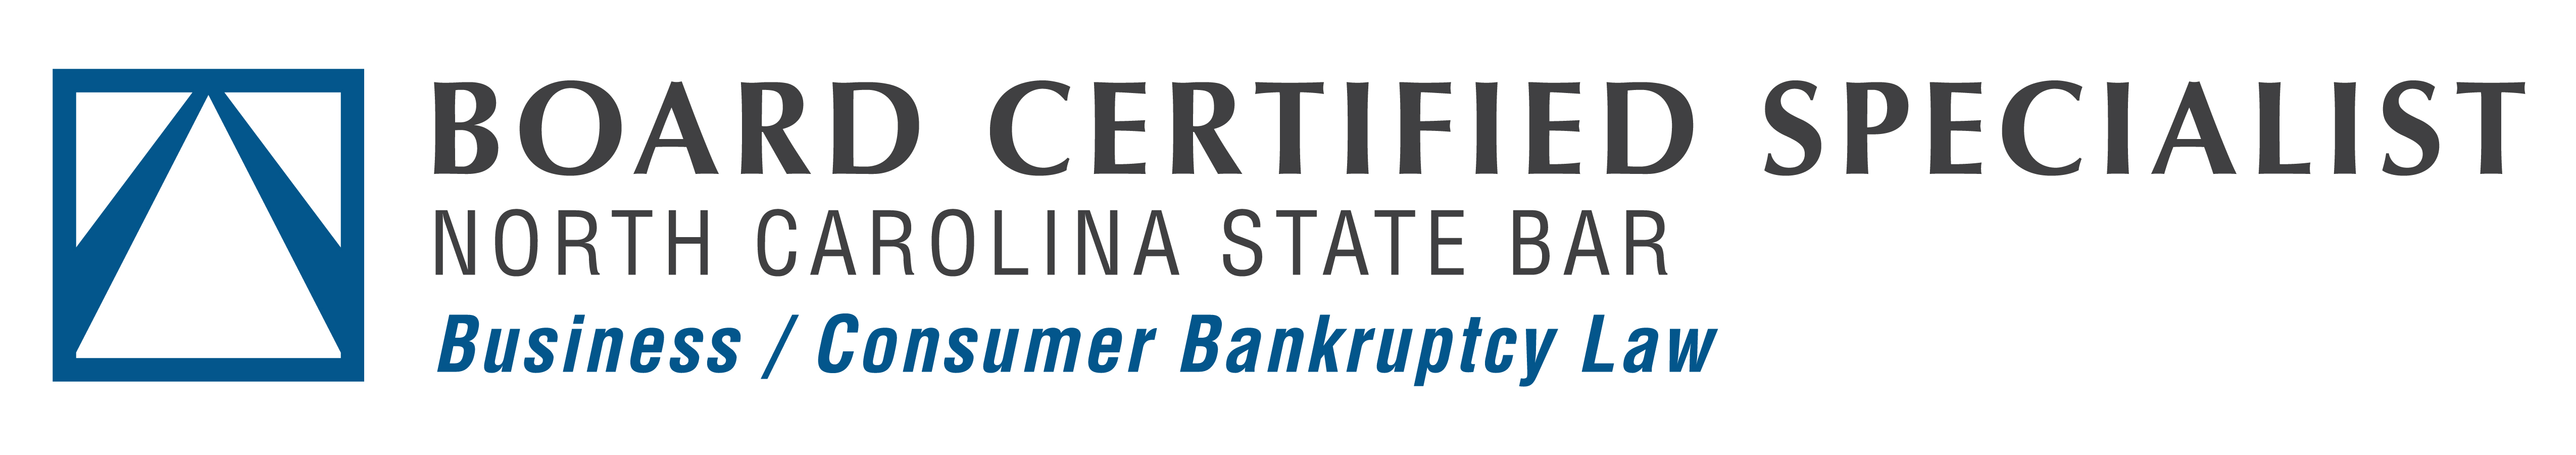 Certified Bankruptcy Law Specialist